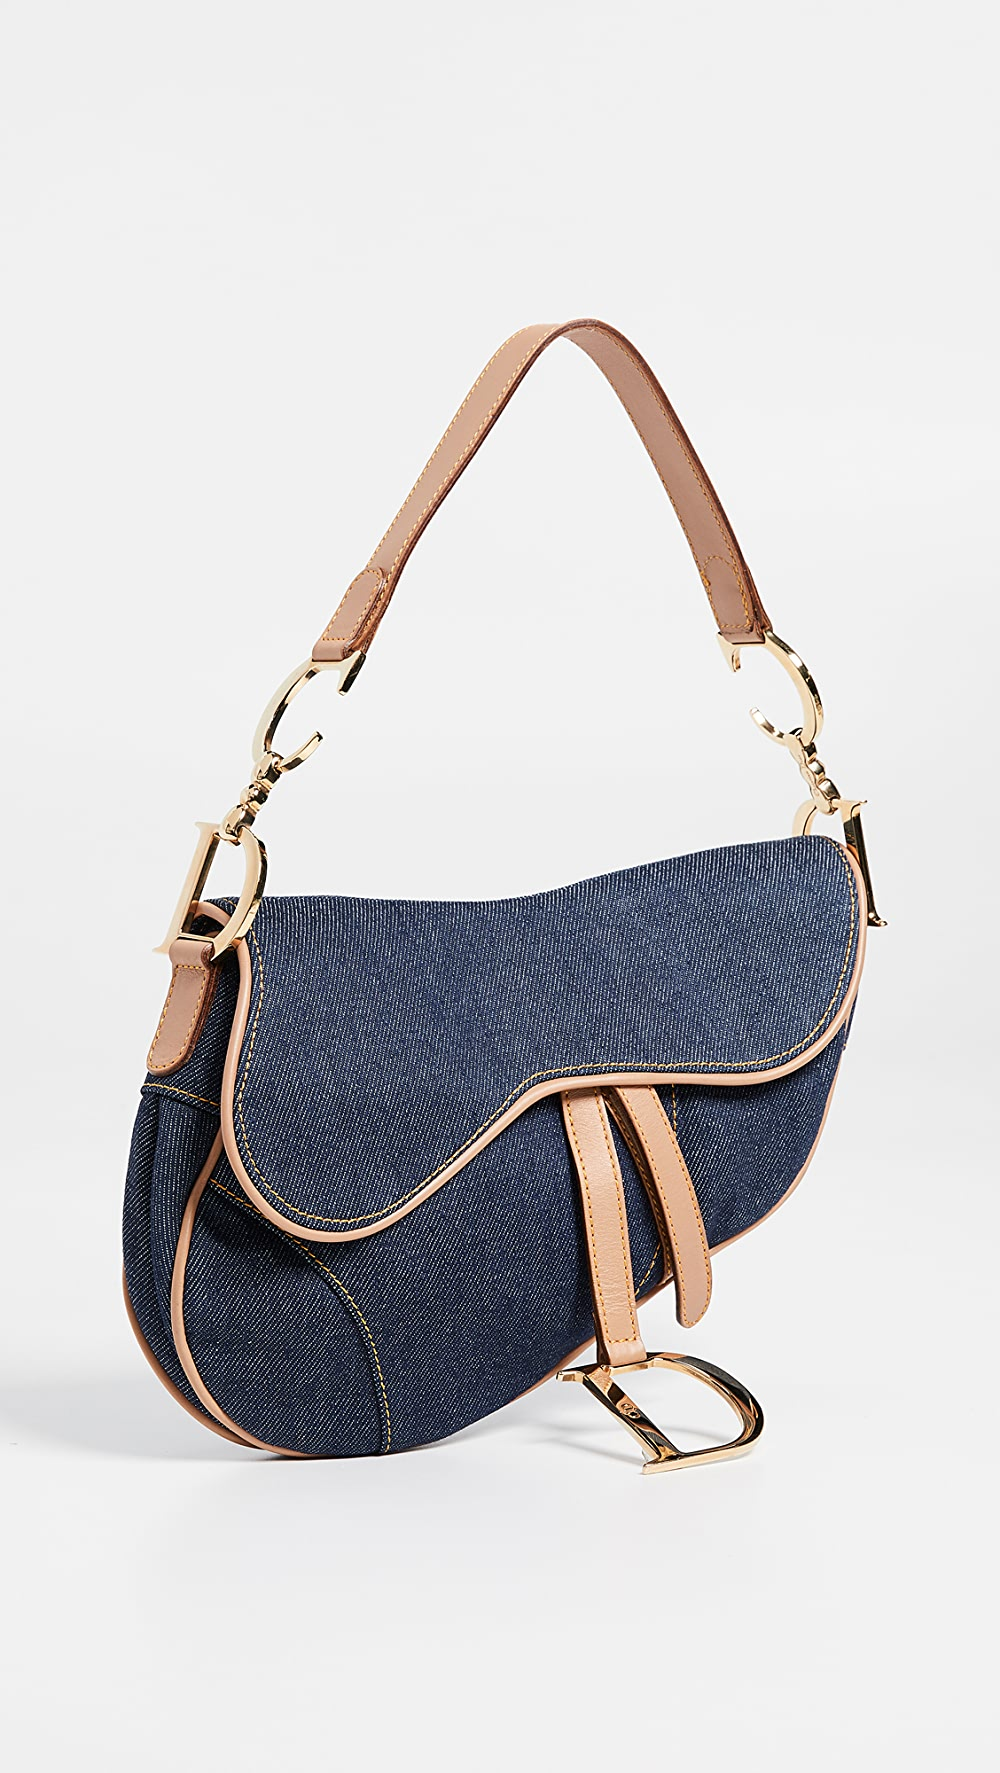 Brave What Goes Around Comes Around - Dior Blue Denim Saddle Bag To Have A Long Historical Standing